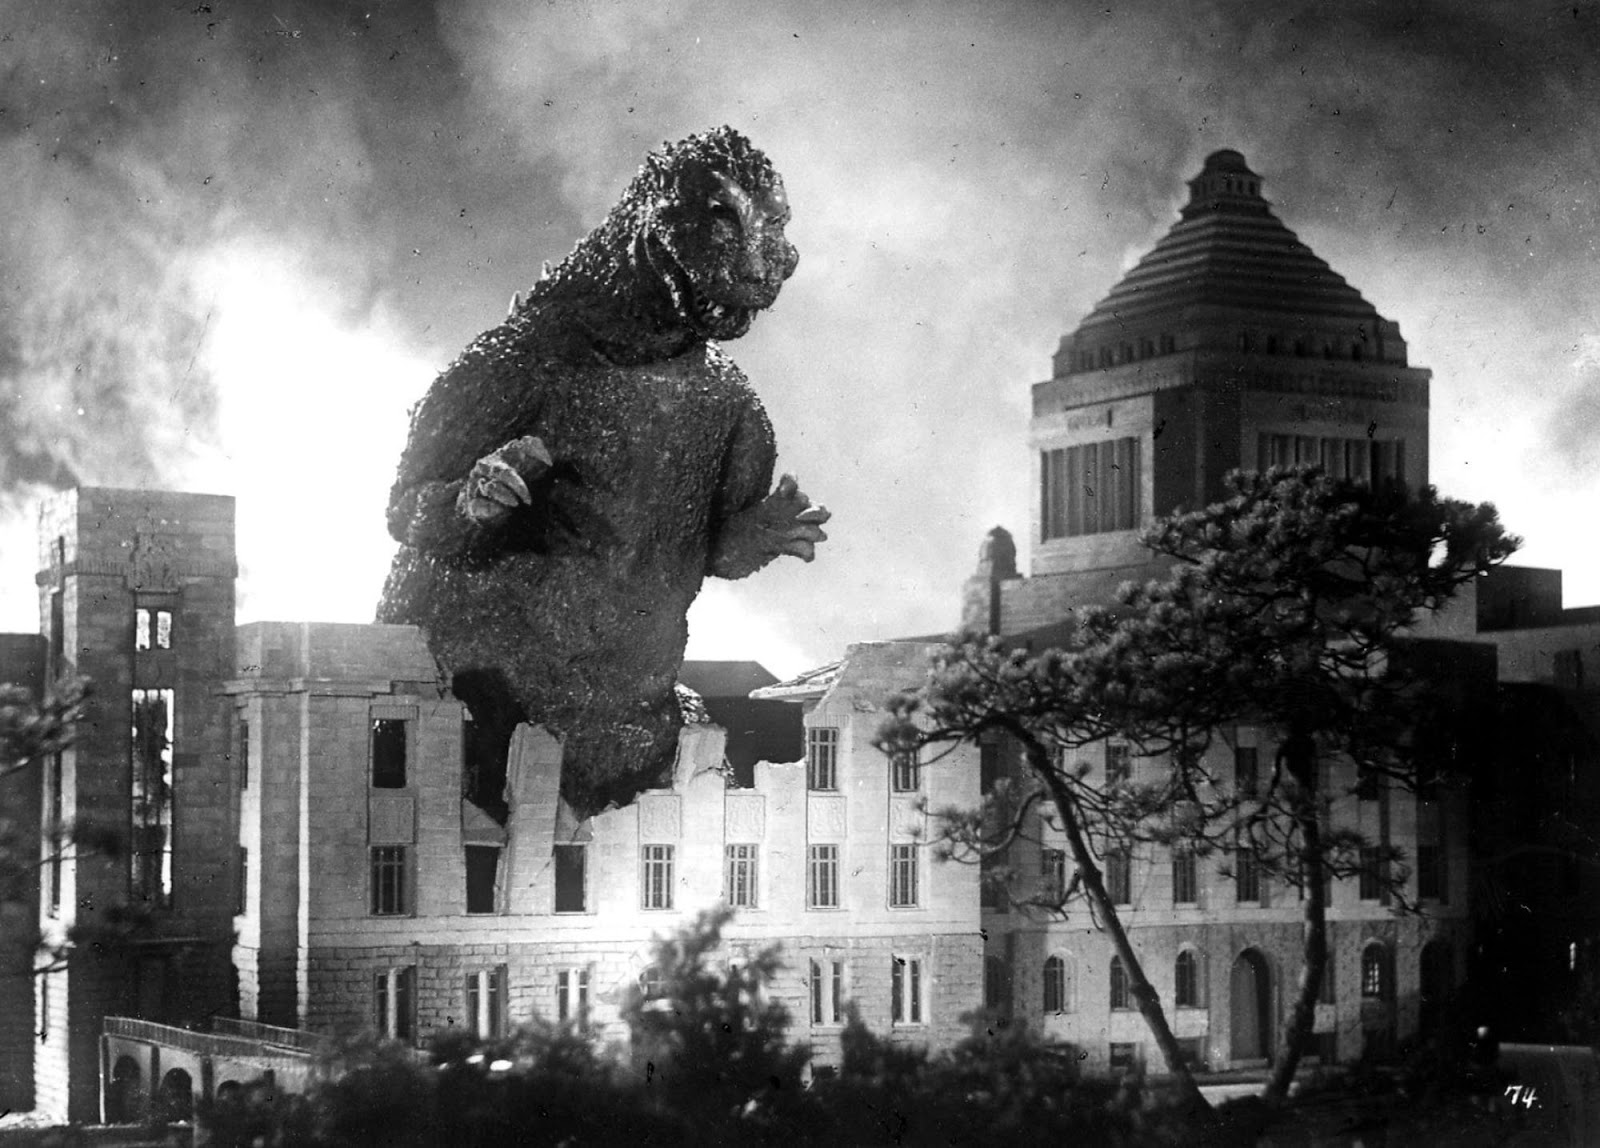 Blog of the Darned: Godzilla vs the American Disaster Movie